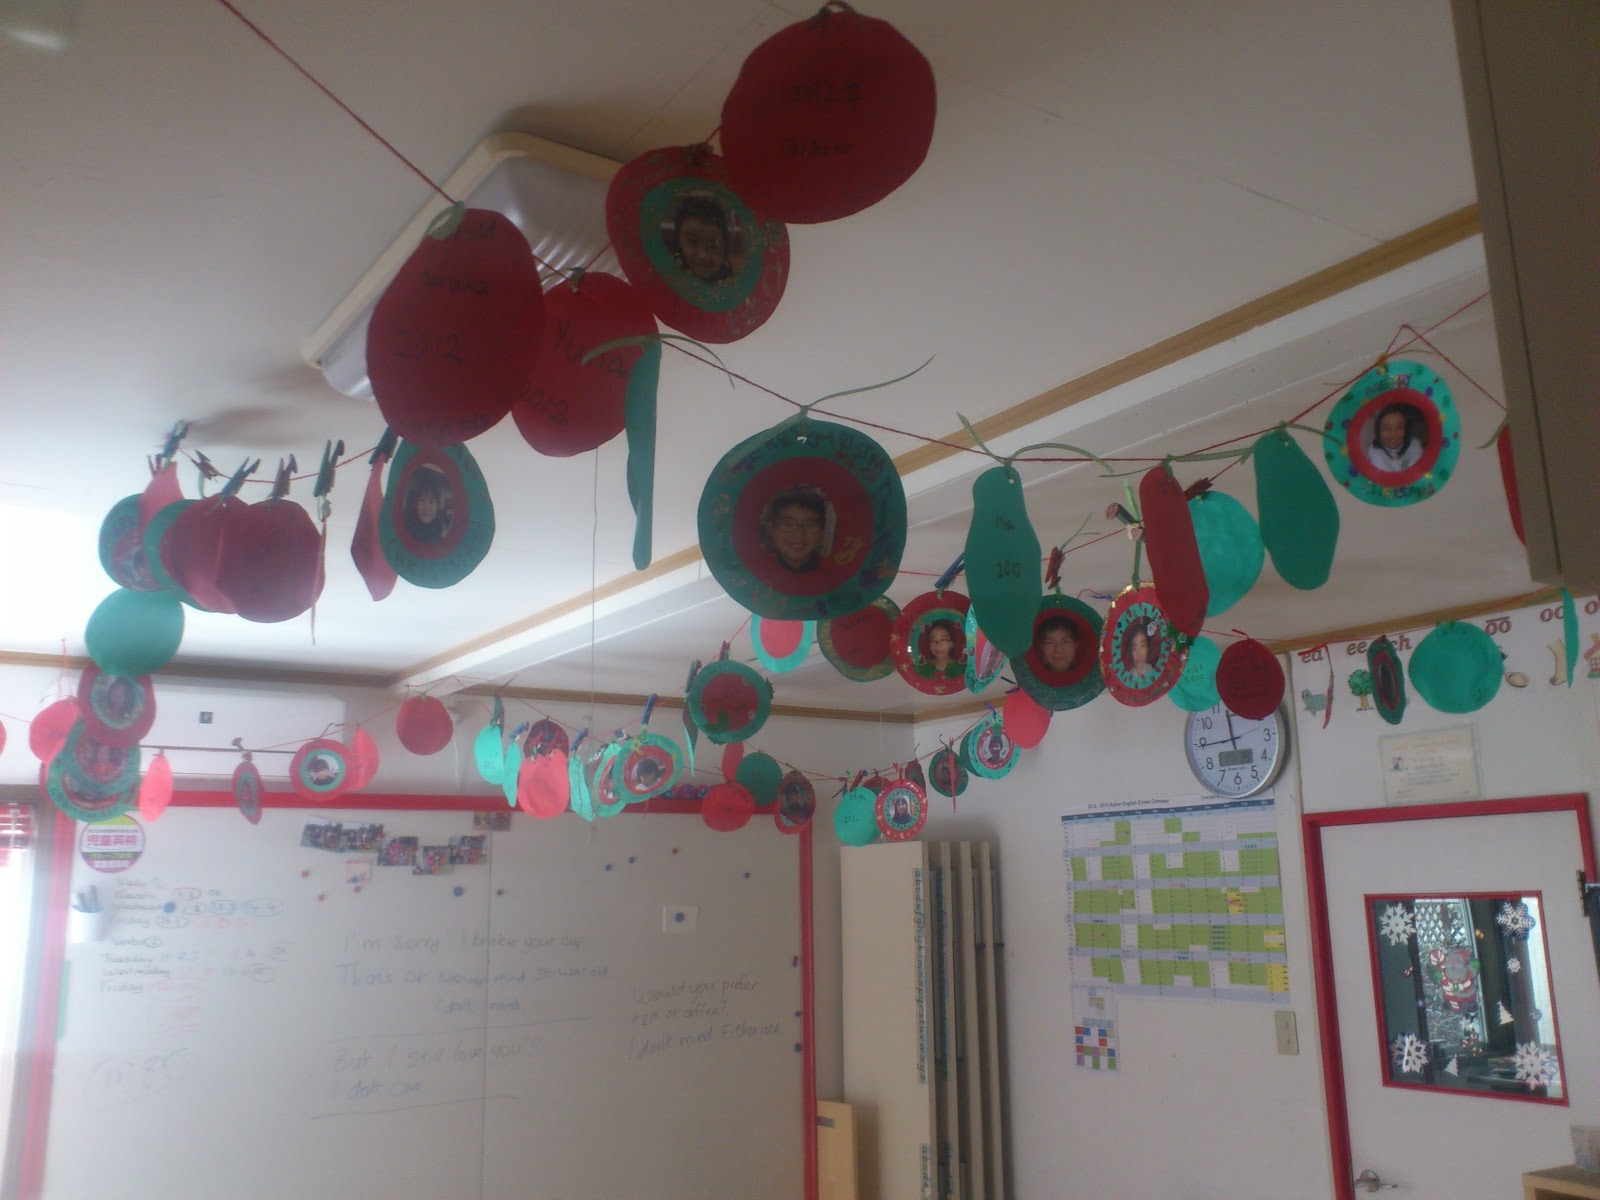 Decorating Ideas # Hyotenka Christmas Decorations In The Classroom December